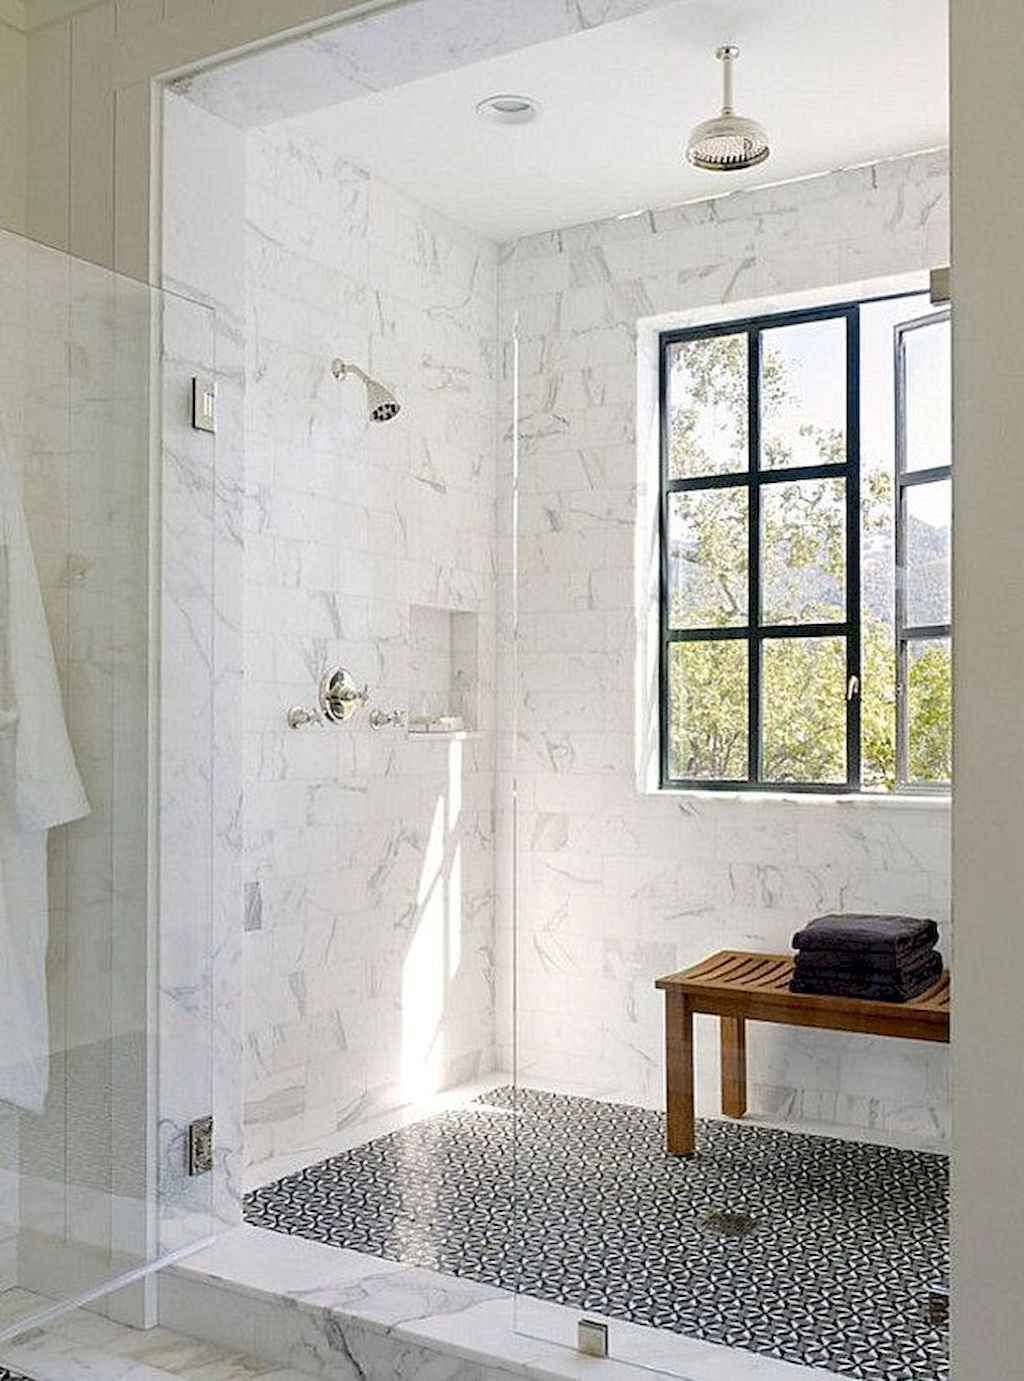 150 Stunning Farmhouse Bathroom Tile Floor Decor Ideas And Remodel To Inspire Your Bathroom 64 Window In Shower Modern Farmhouse Bathroom Beautiful Bathrooms